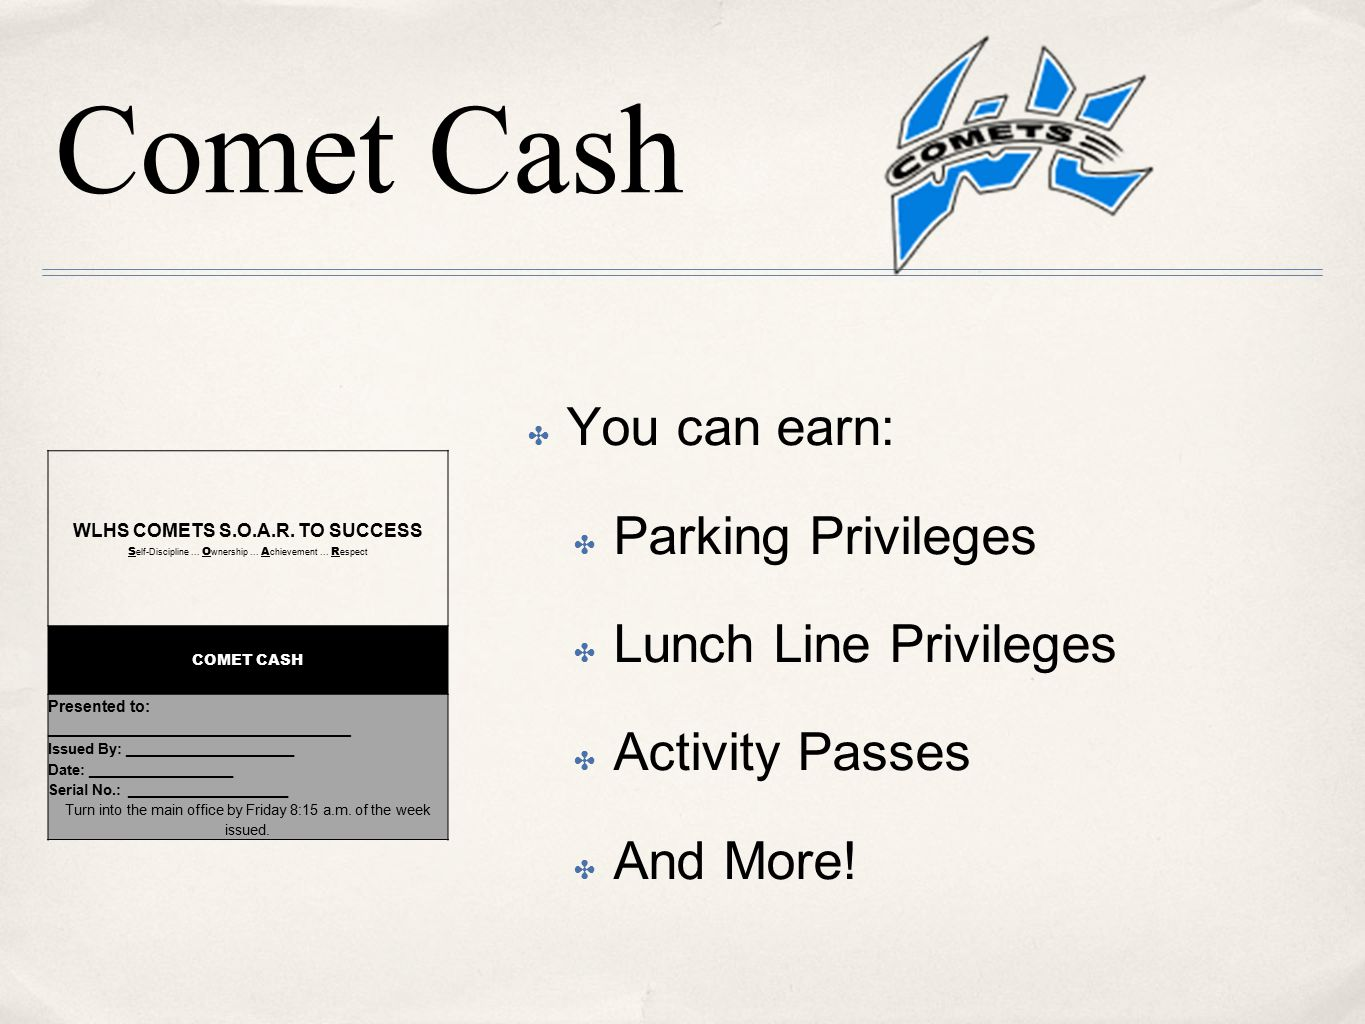 Comet Cash ✤ You can earn: ✤ Parking Privileges ✤ Lunch Line Privileges ✤ Activity Passes ✤ And More! WLHS COMETS S.O.A.R. TO SUCCESS S elf-Discipline